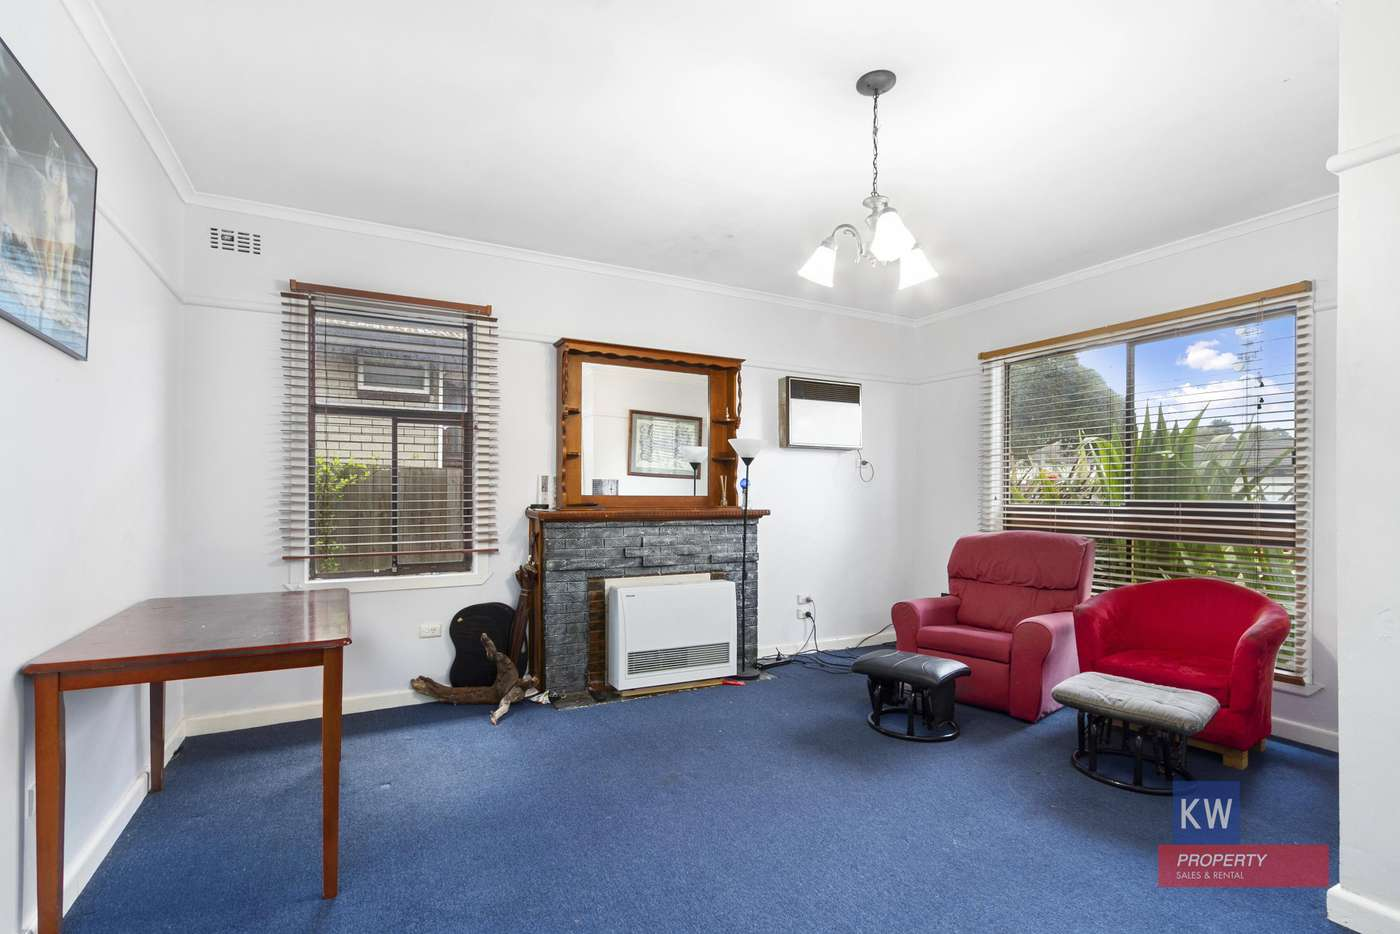 Seventh view of Homely house listing, 30 Churchill Rd, Morwell VIC 3840